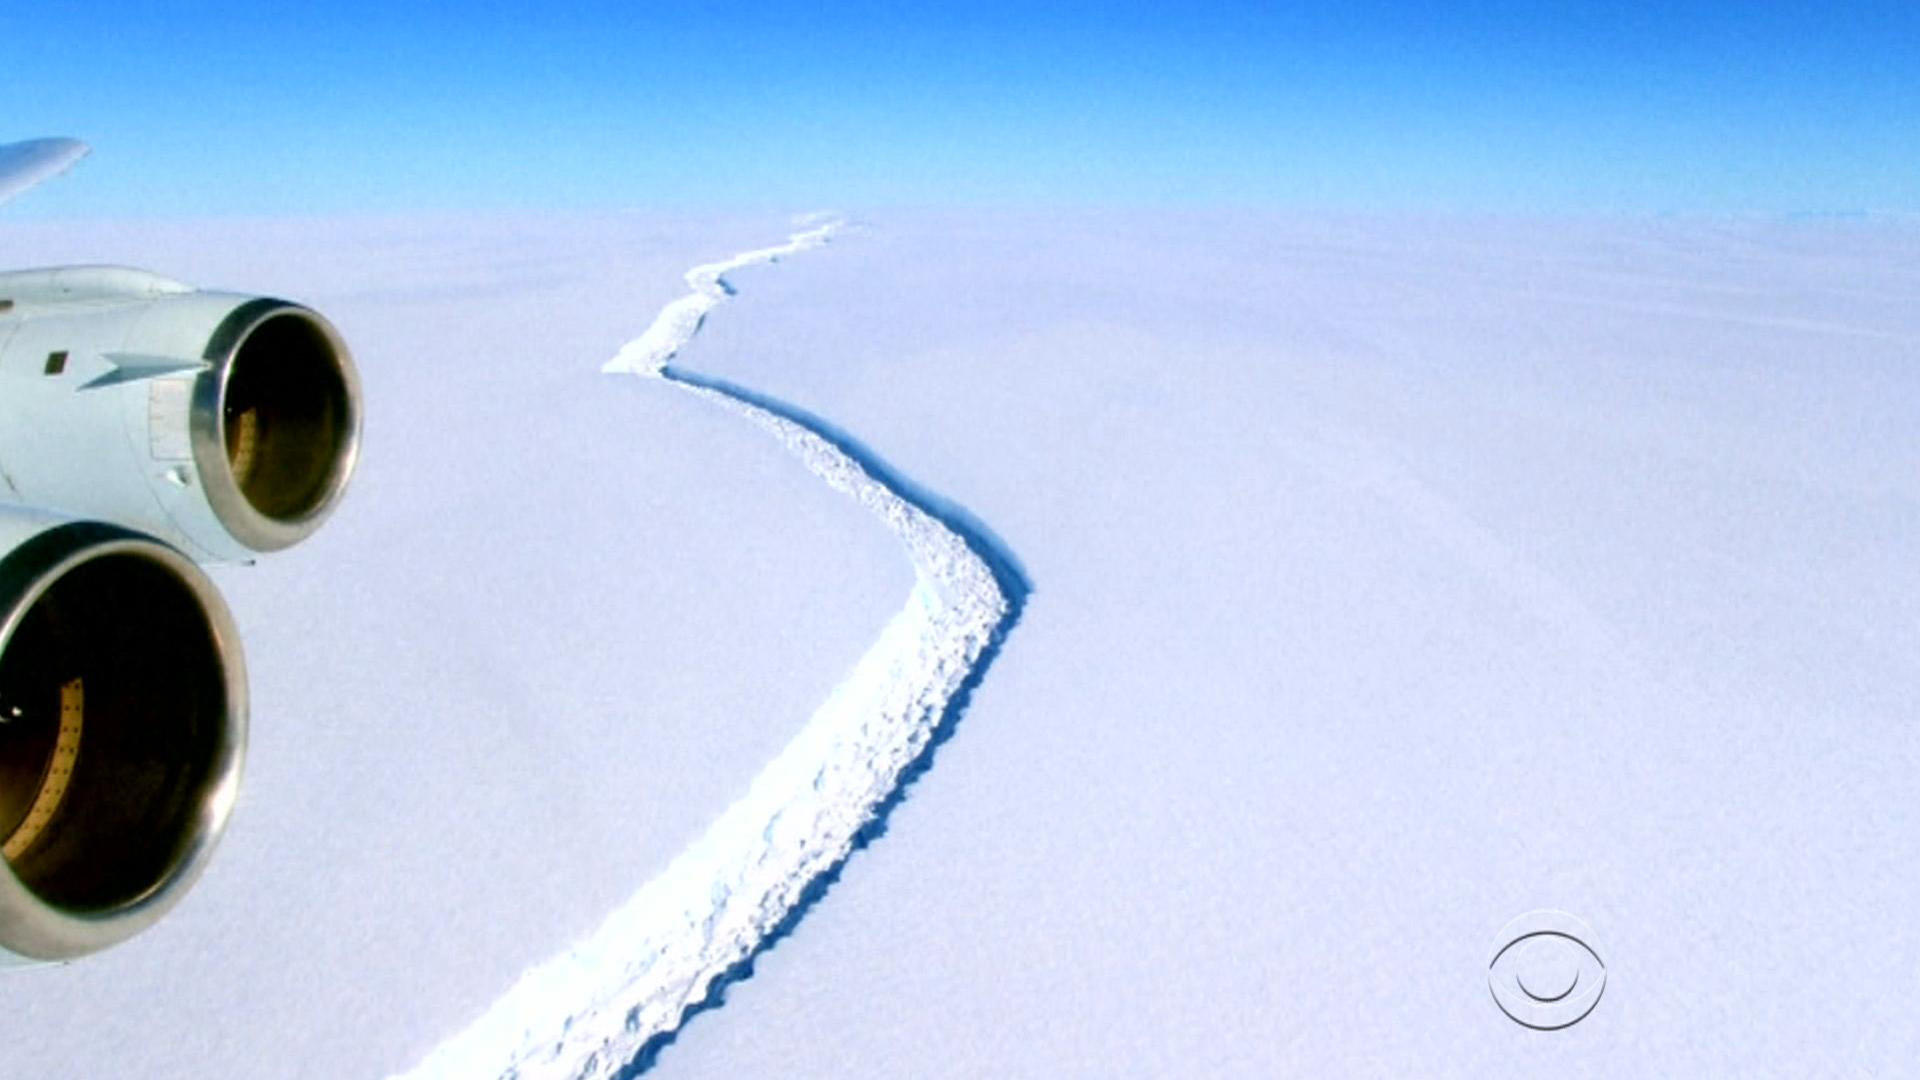 Questions abound after iceberg breaks away from Antarctica